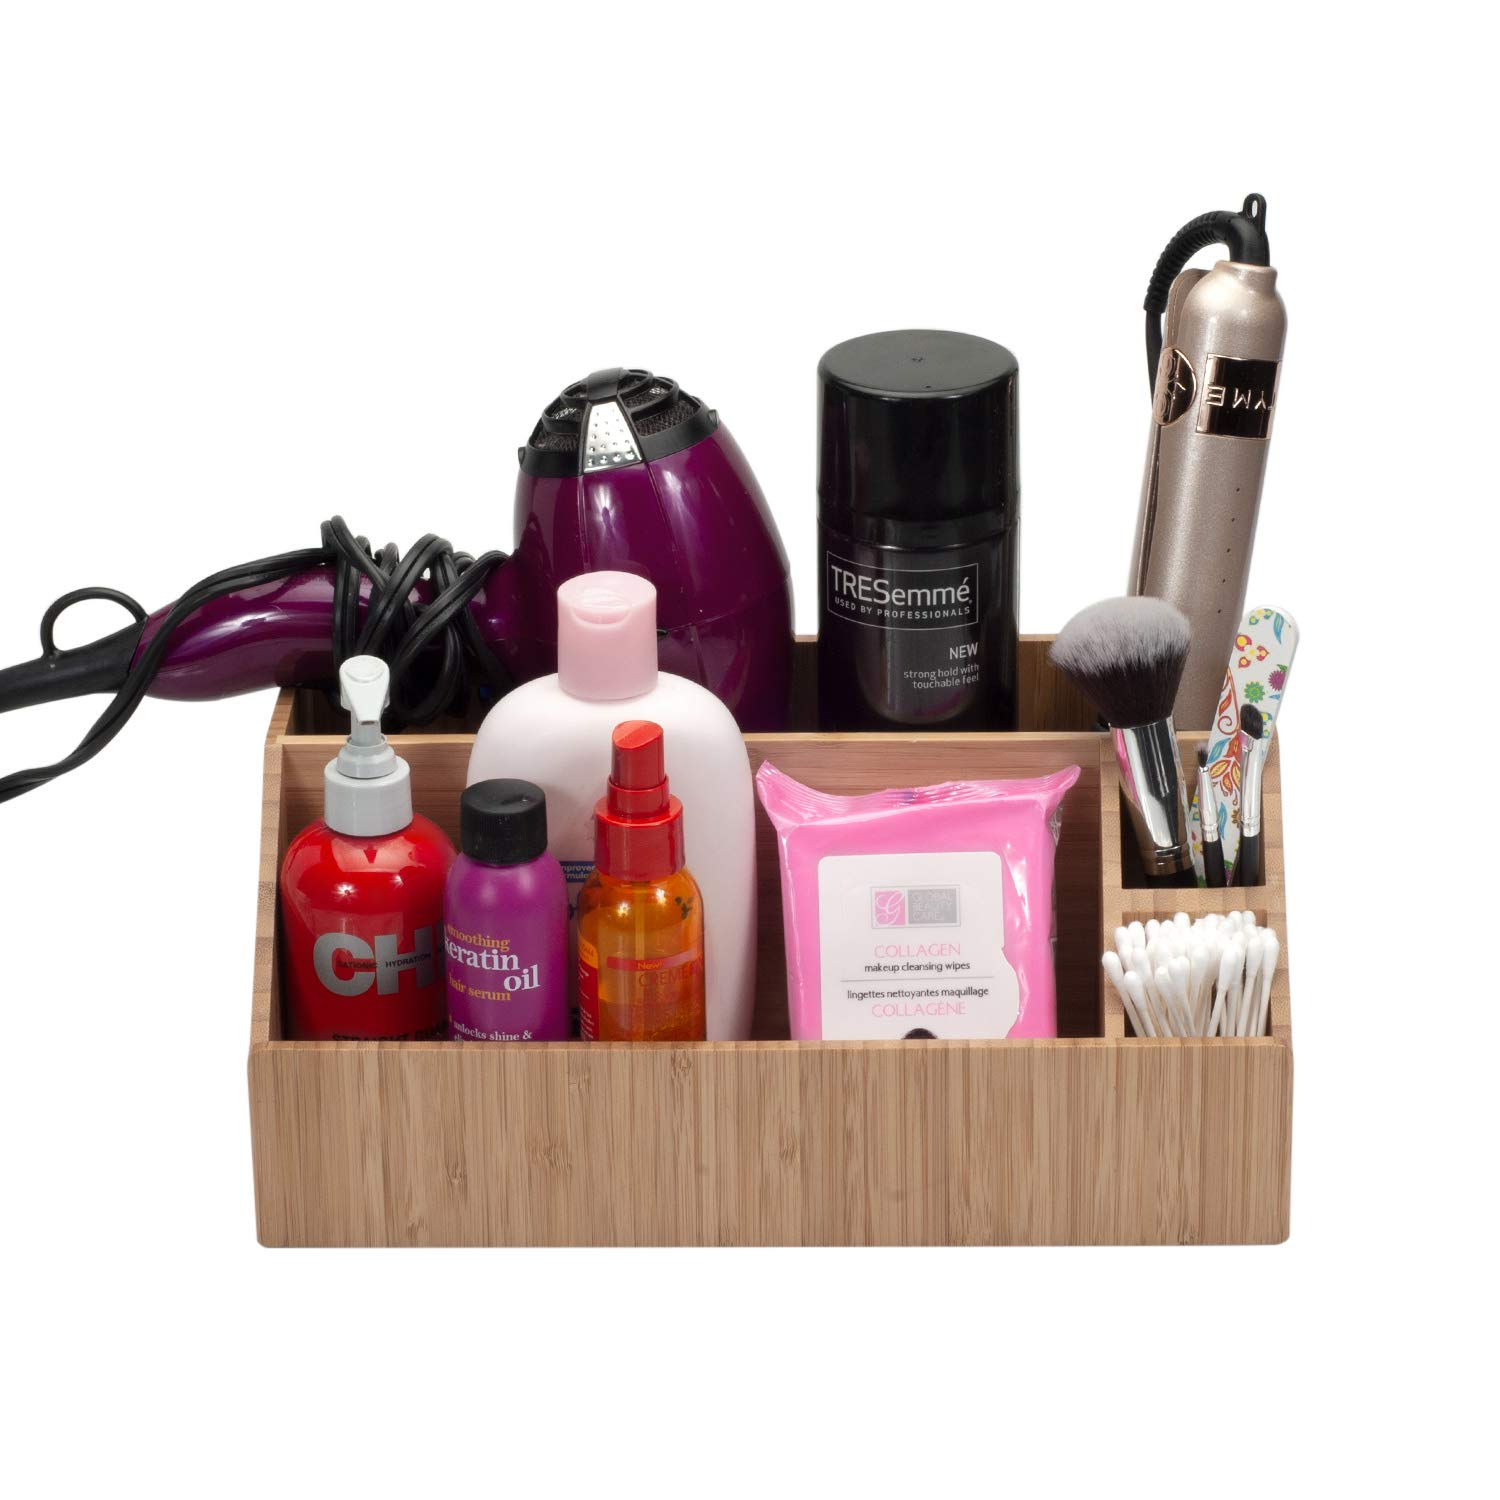 MobileVision Bamboo Make Up Organizer & Cosmetic Holder, Storage on Vanity Counter or Bathroom, Multiple Compartments